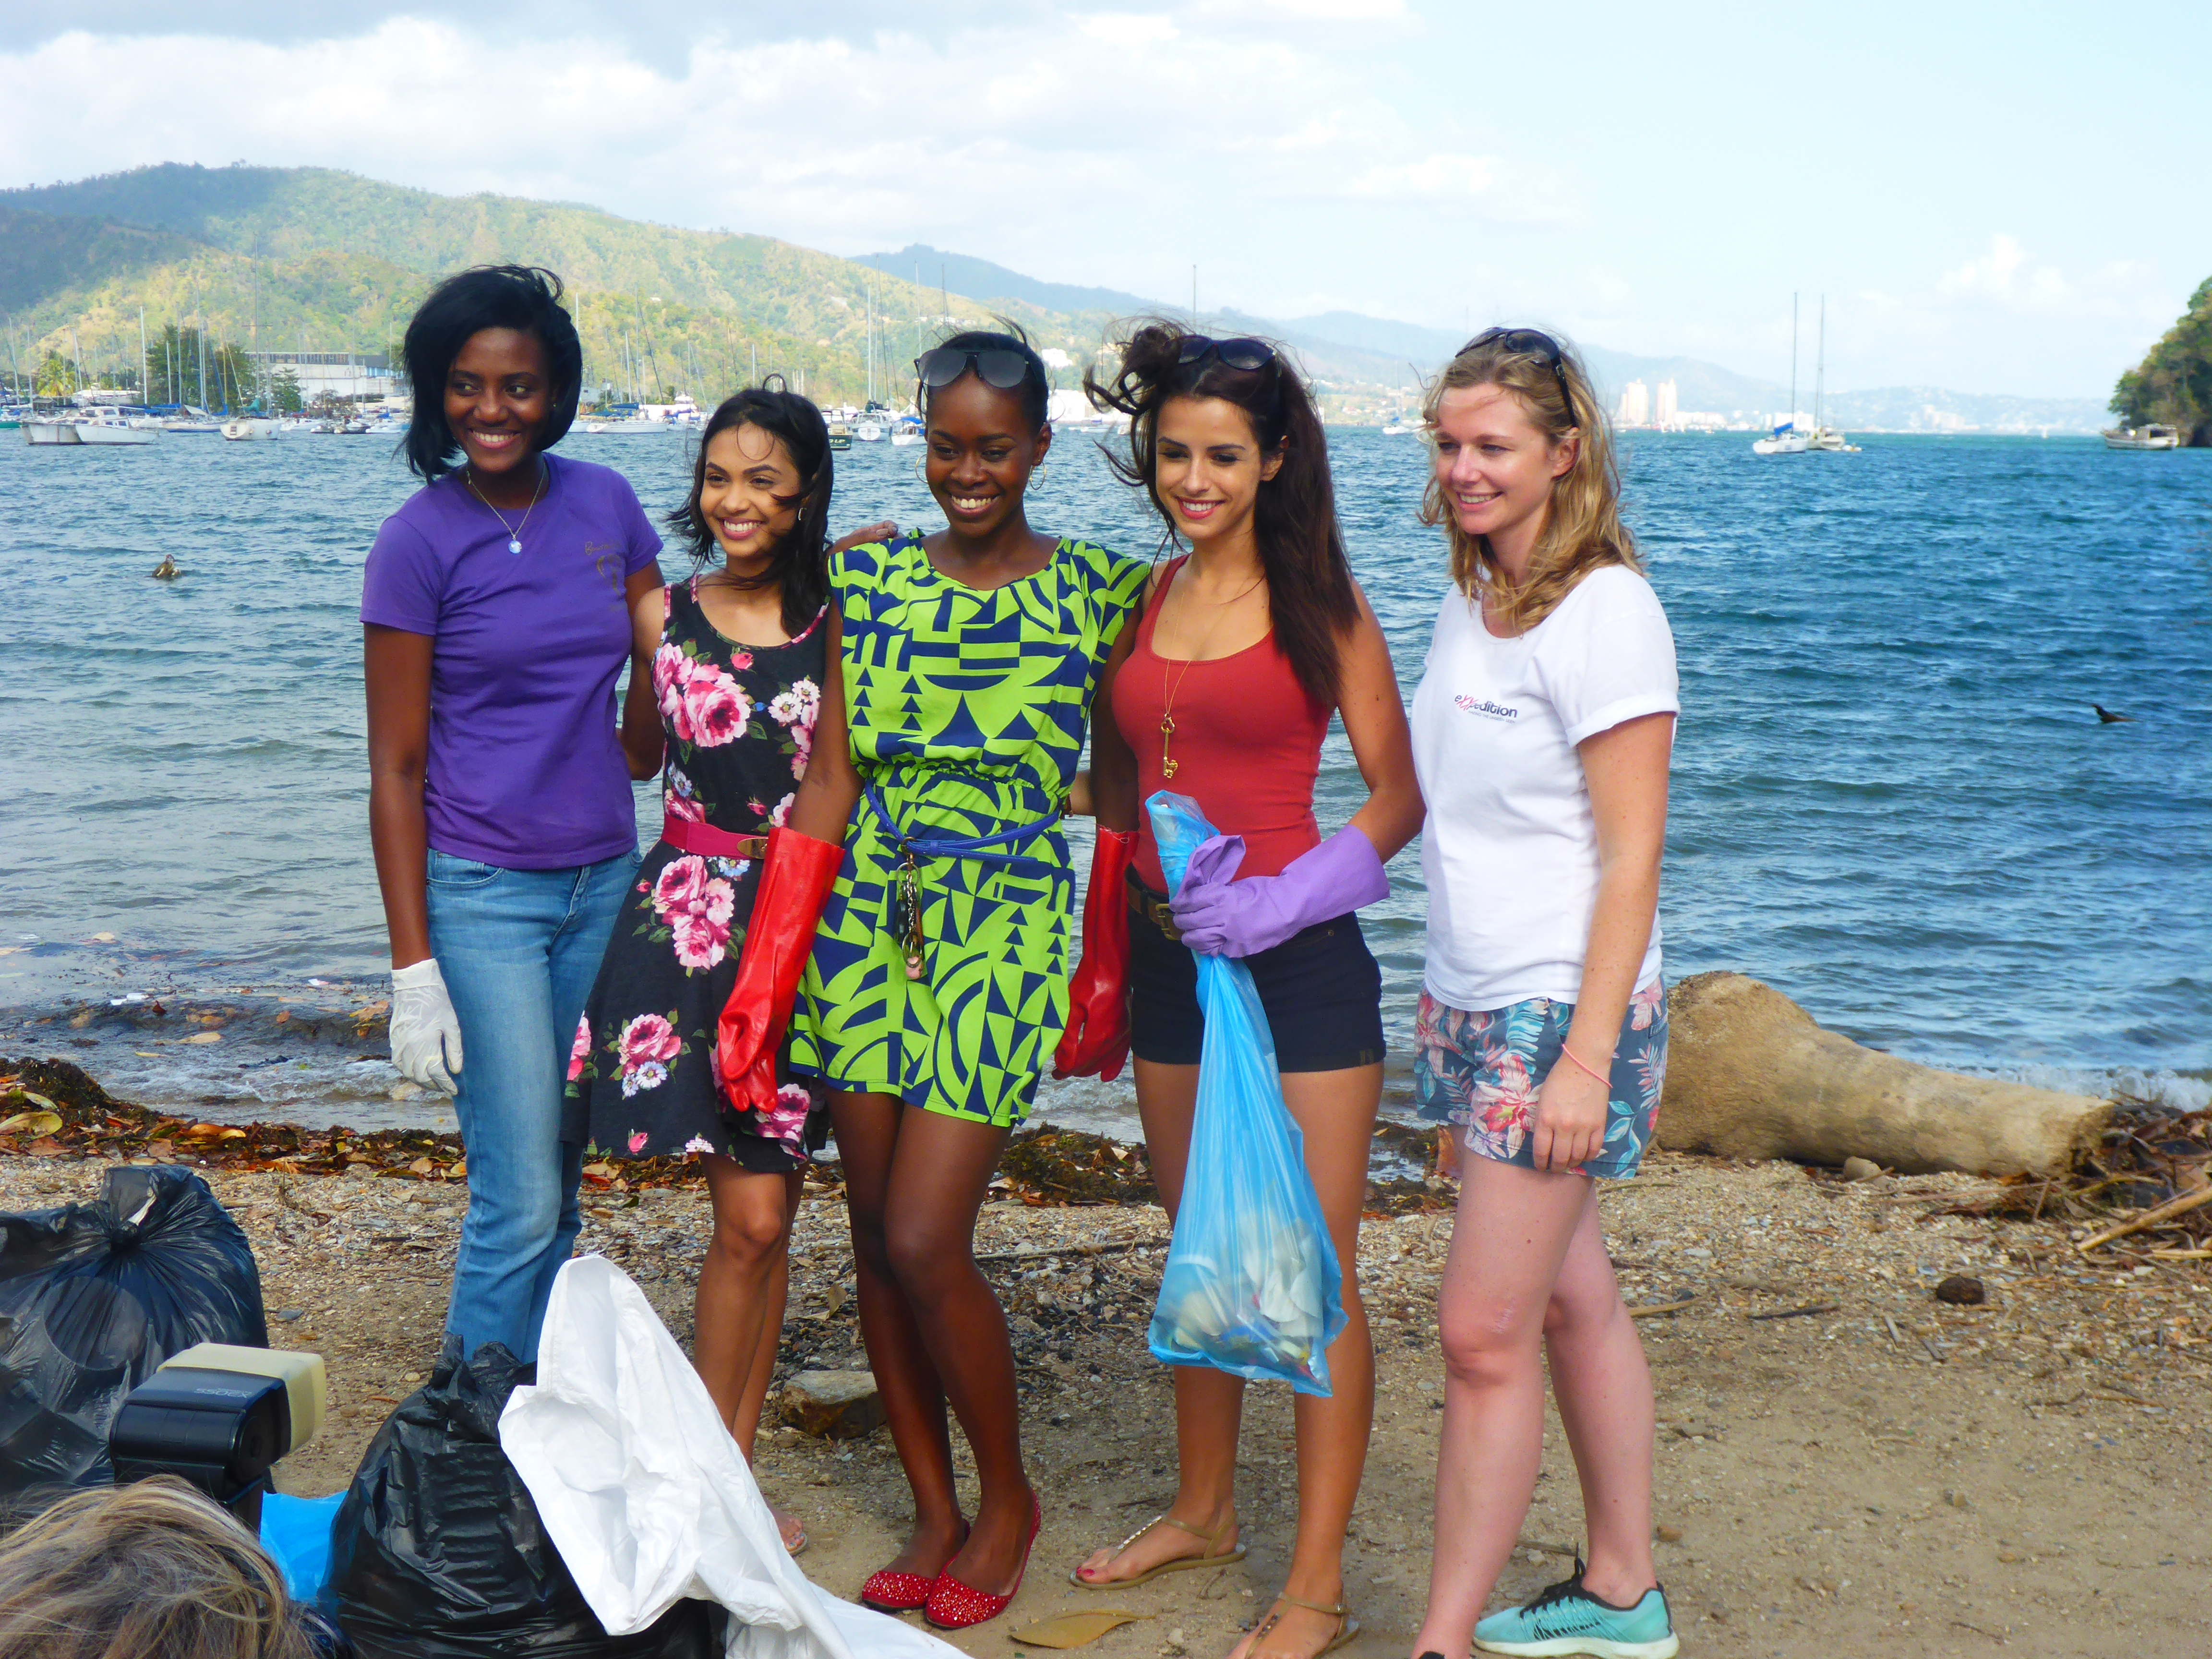 Emily and our Trinidad beach clean up crew. Trinidad environental activism